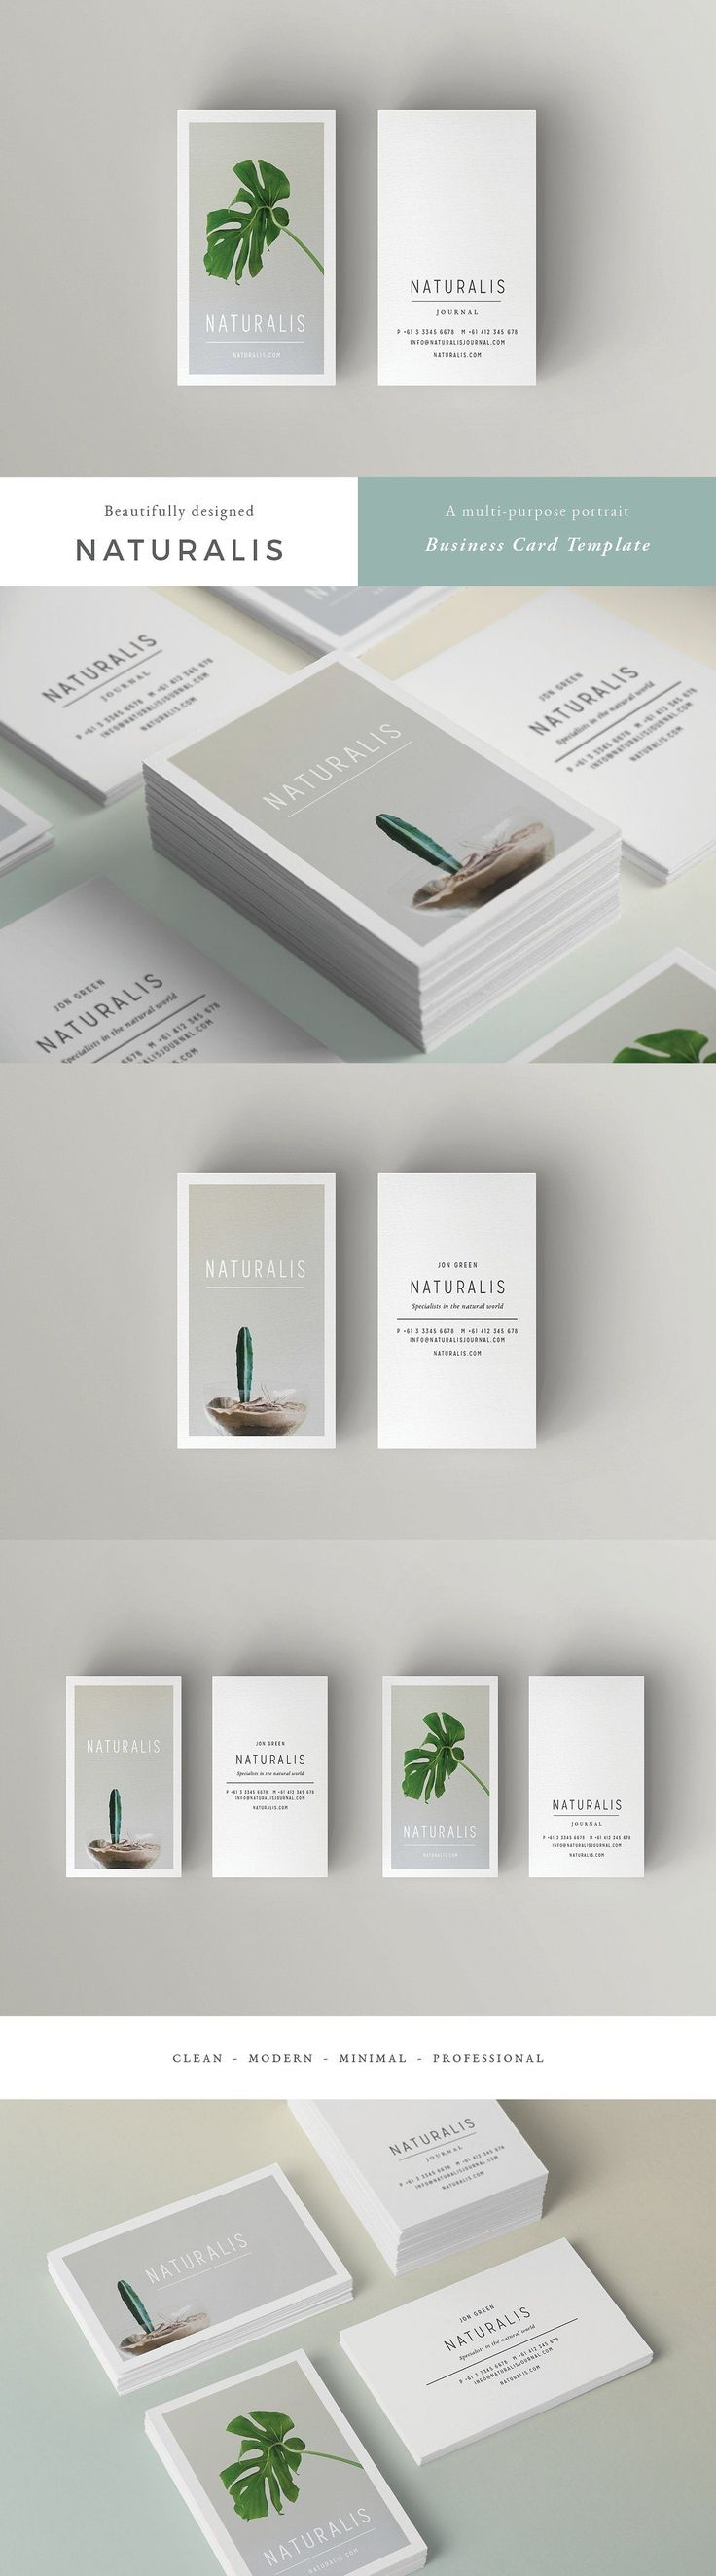 NATURALIS Business Card Template by 46&2 Collective on @creativemarket